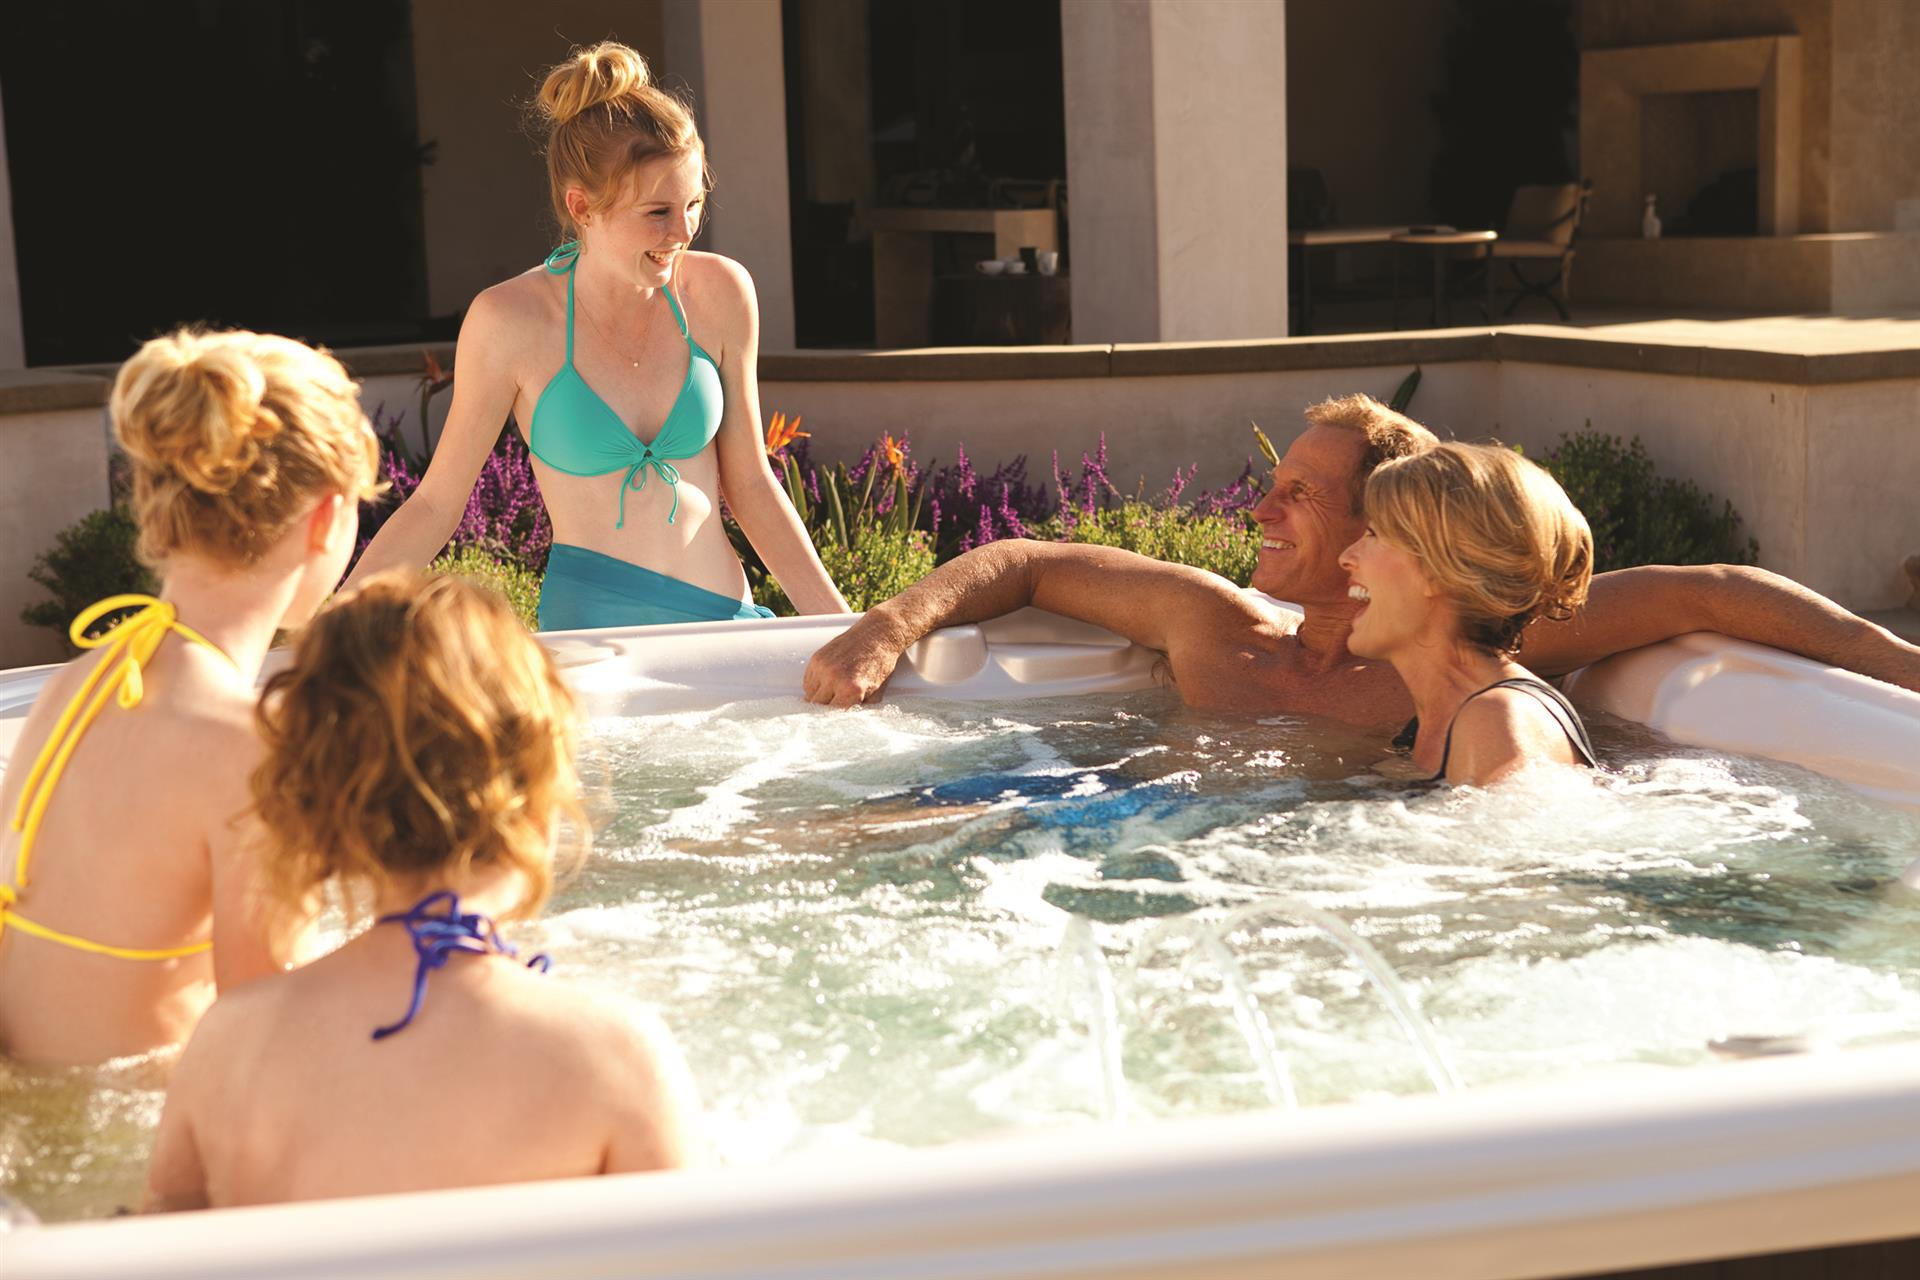 Steps for Social Wellness – Hot Tubs for Sale Minneapolis